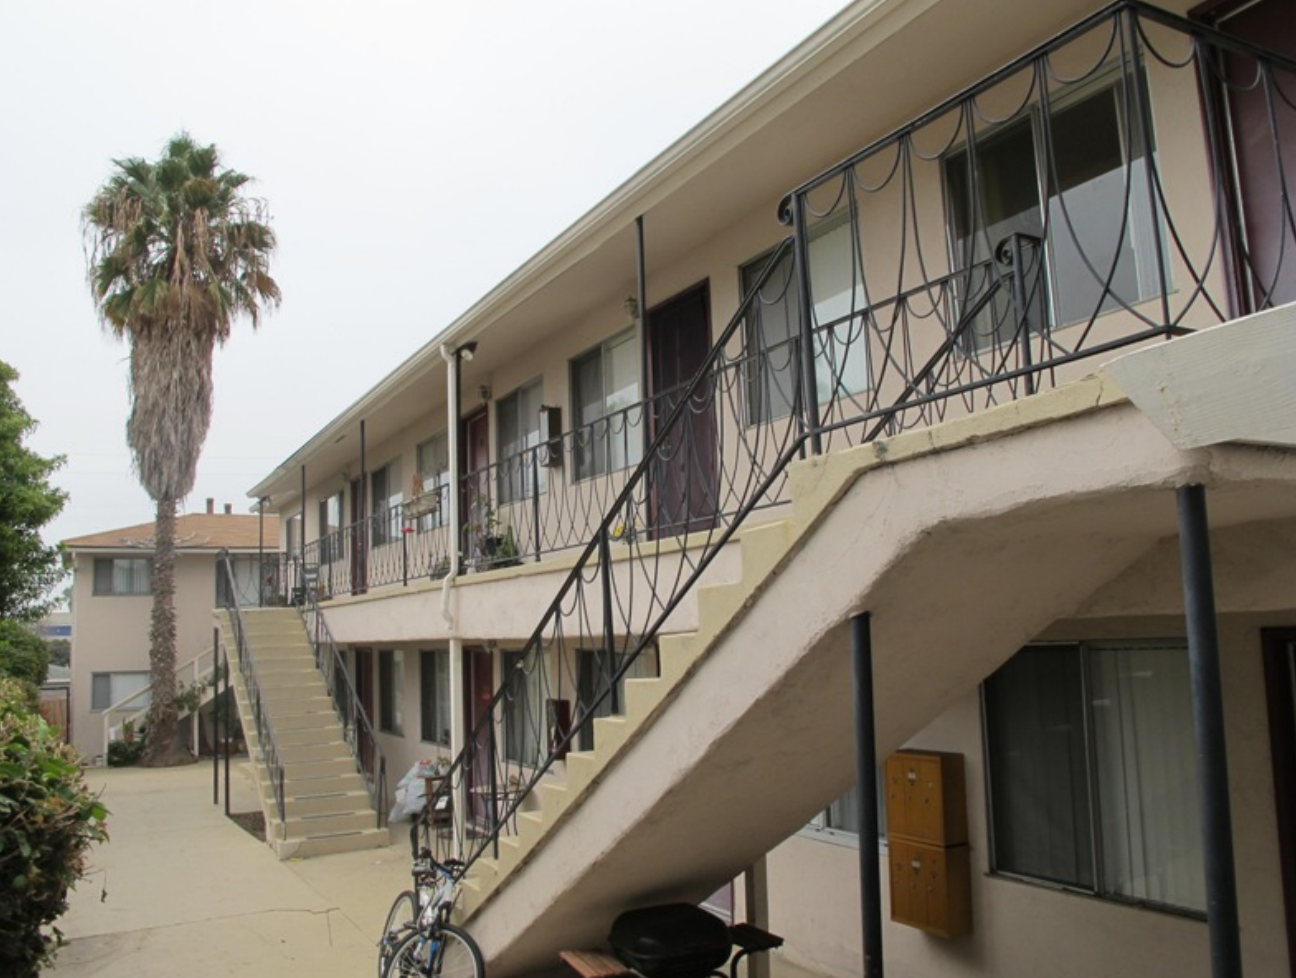 13 UNIT APARTMENT BUILDING – ADAMS AVENUE NORMAL HEIGHTS